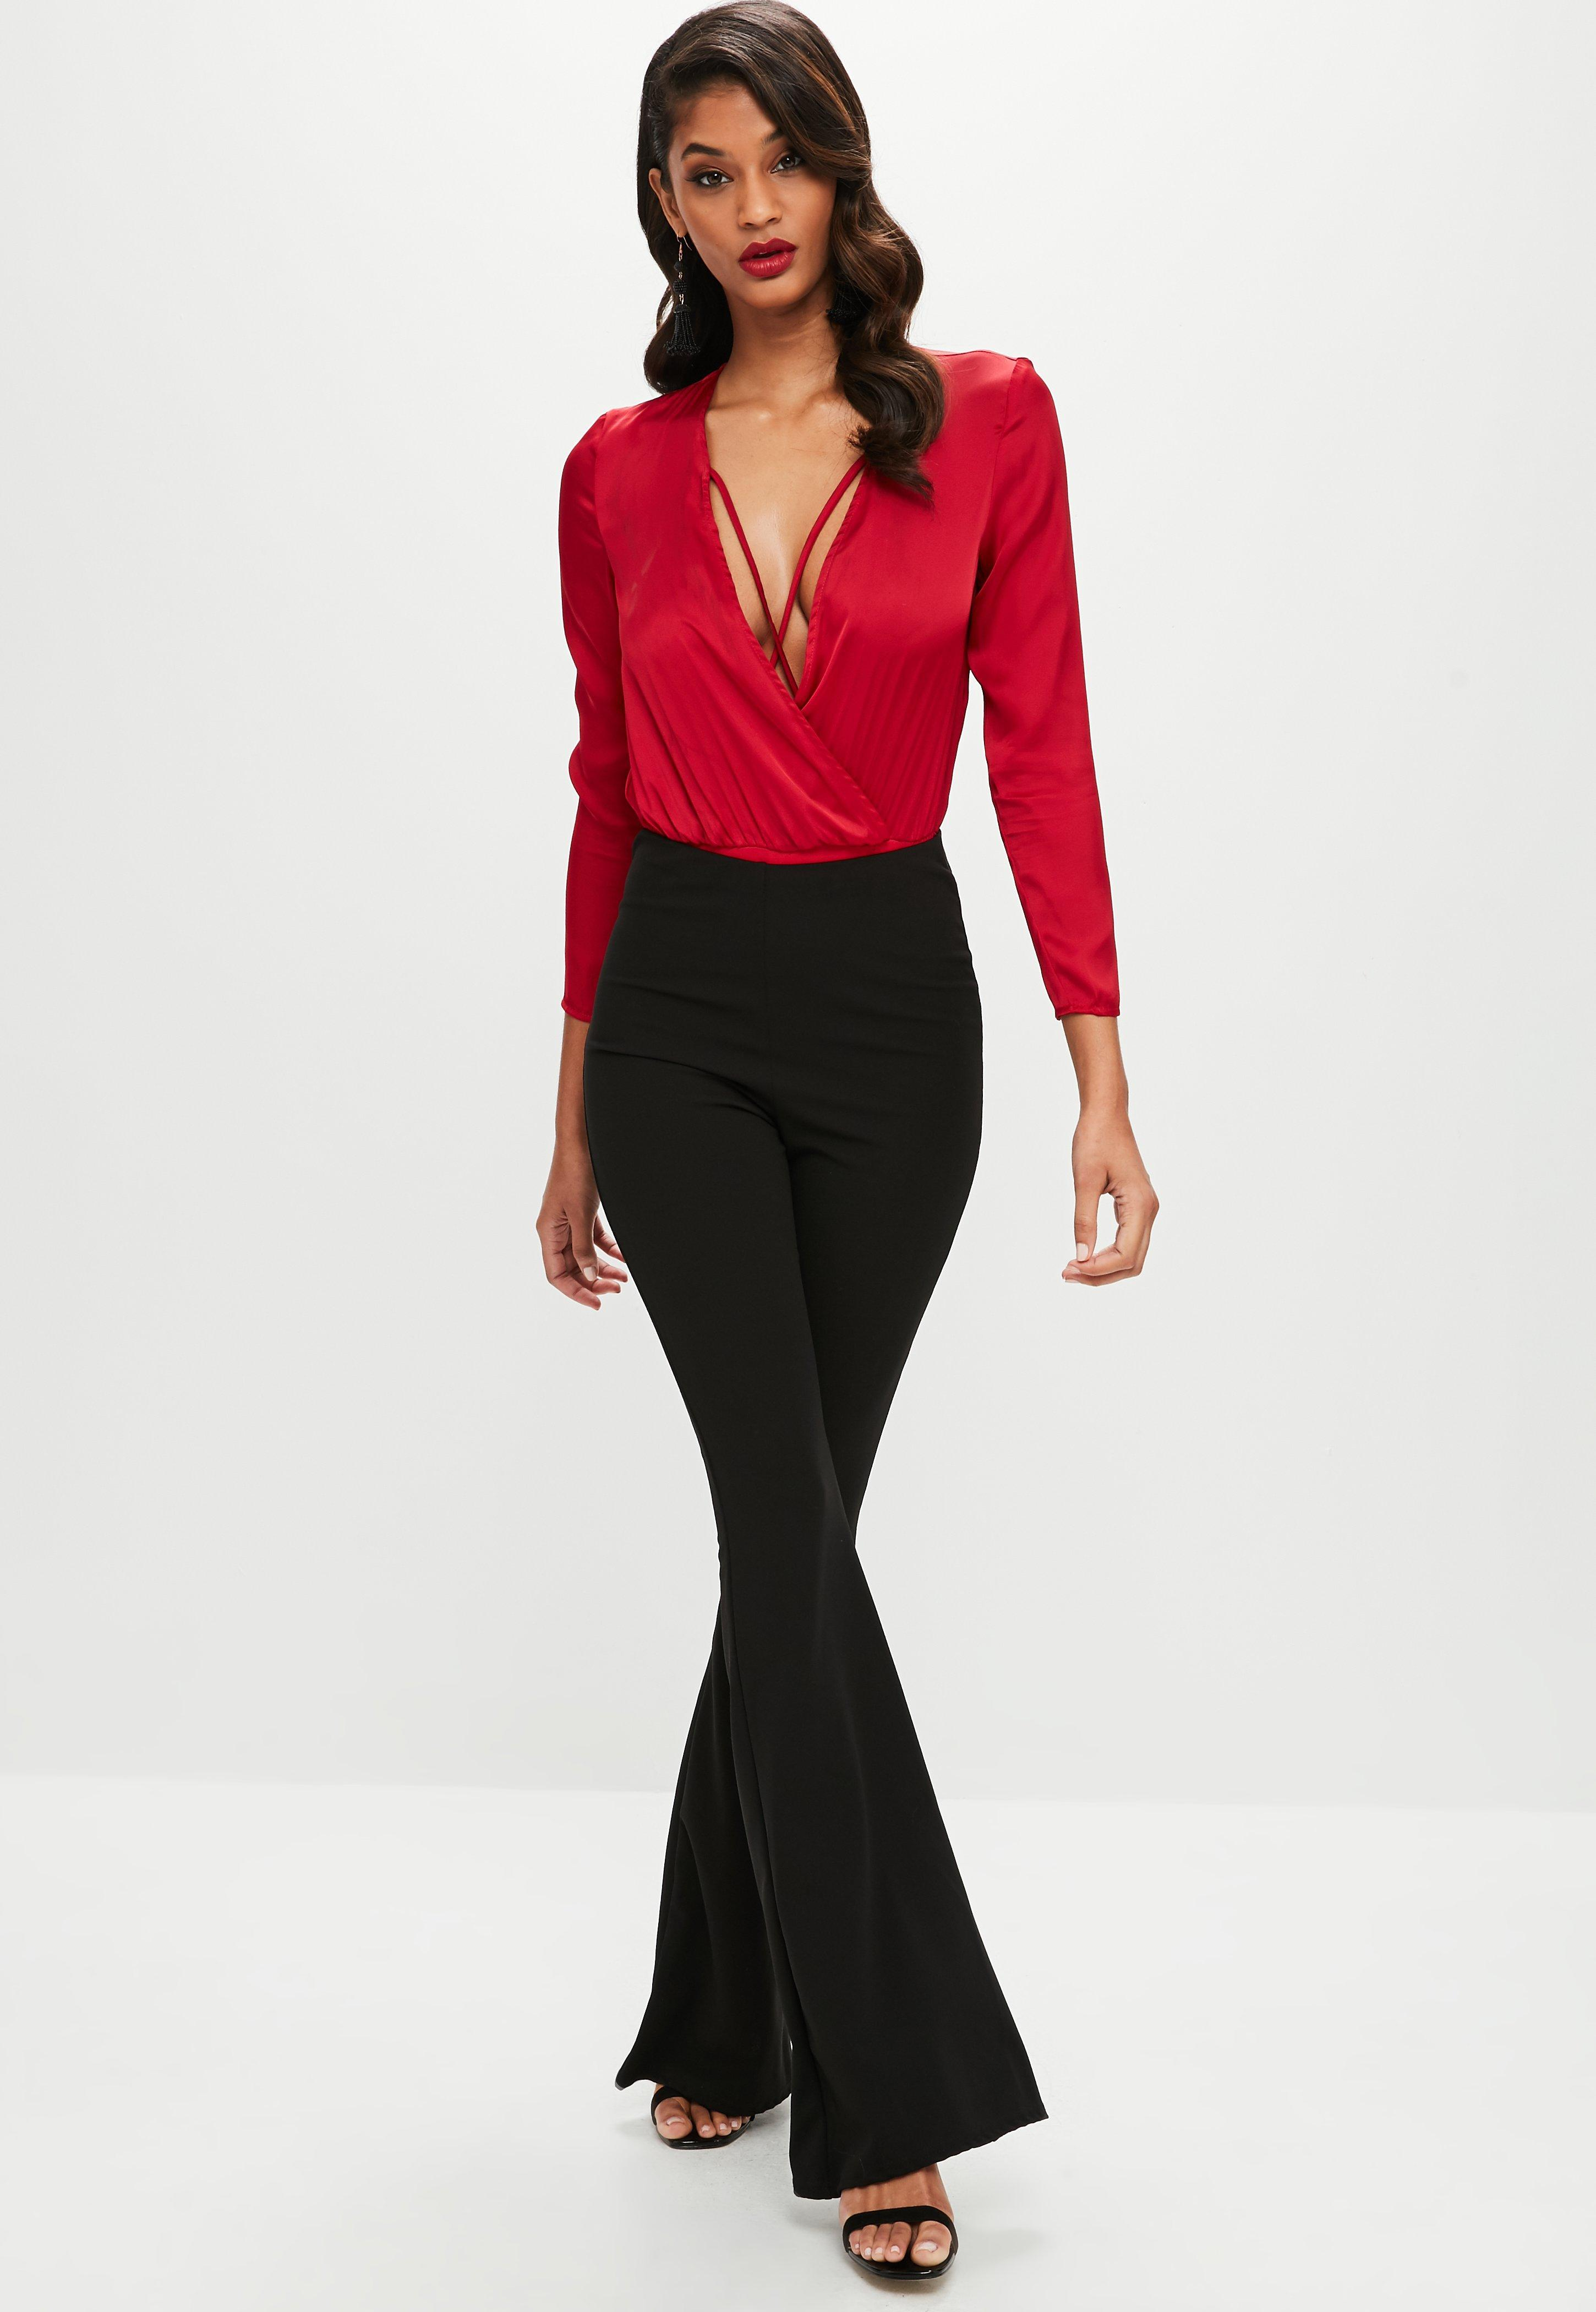 Lyst - Missguided Tall Red Satin Wrap Cross Strap Bodysuit in Red 9a300f448